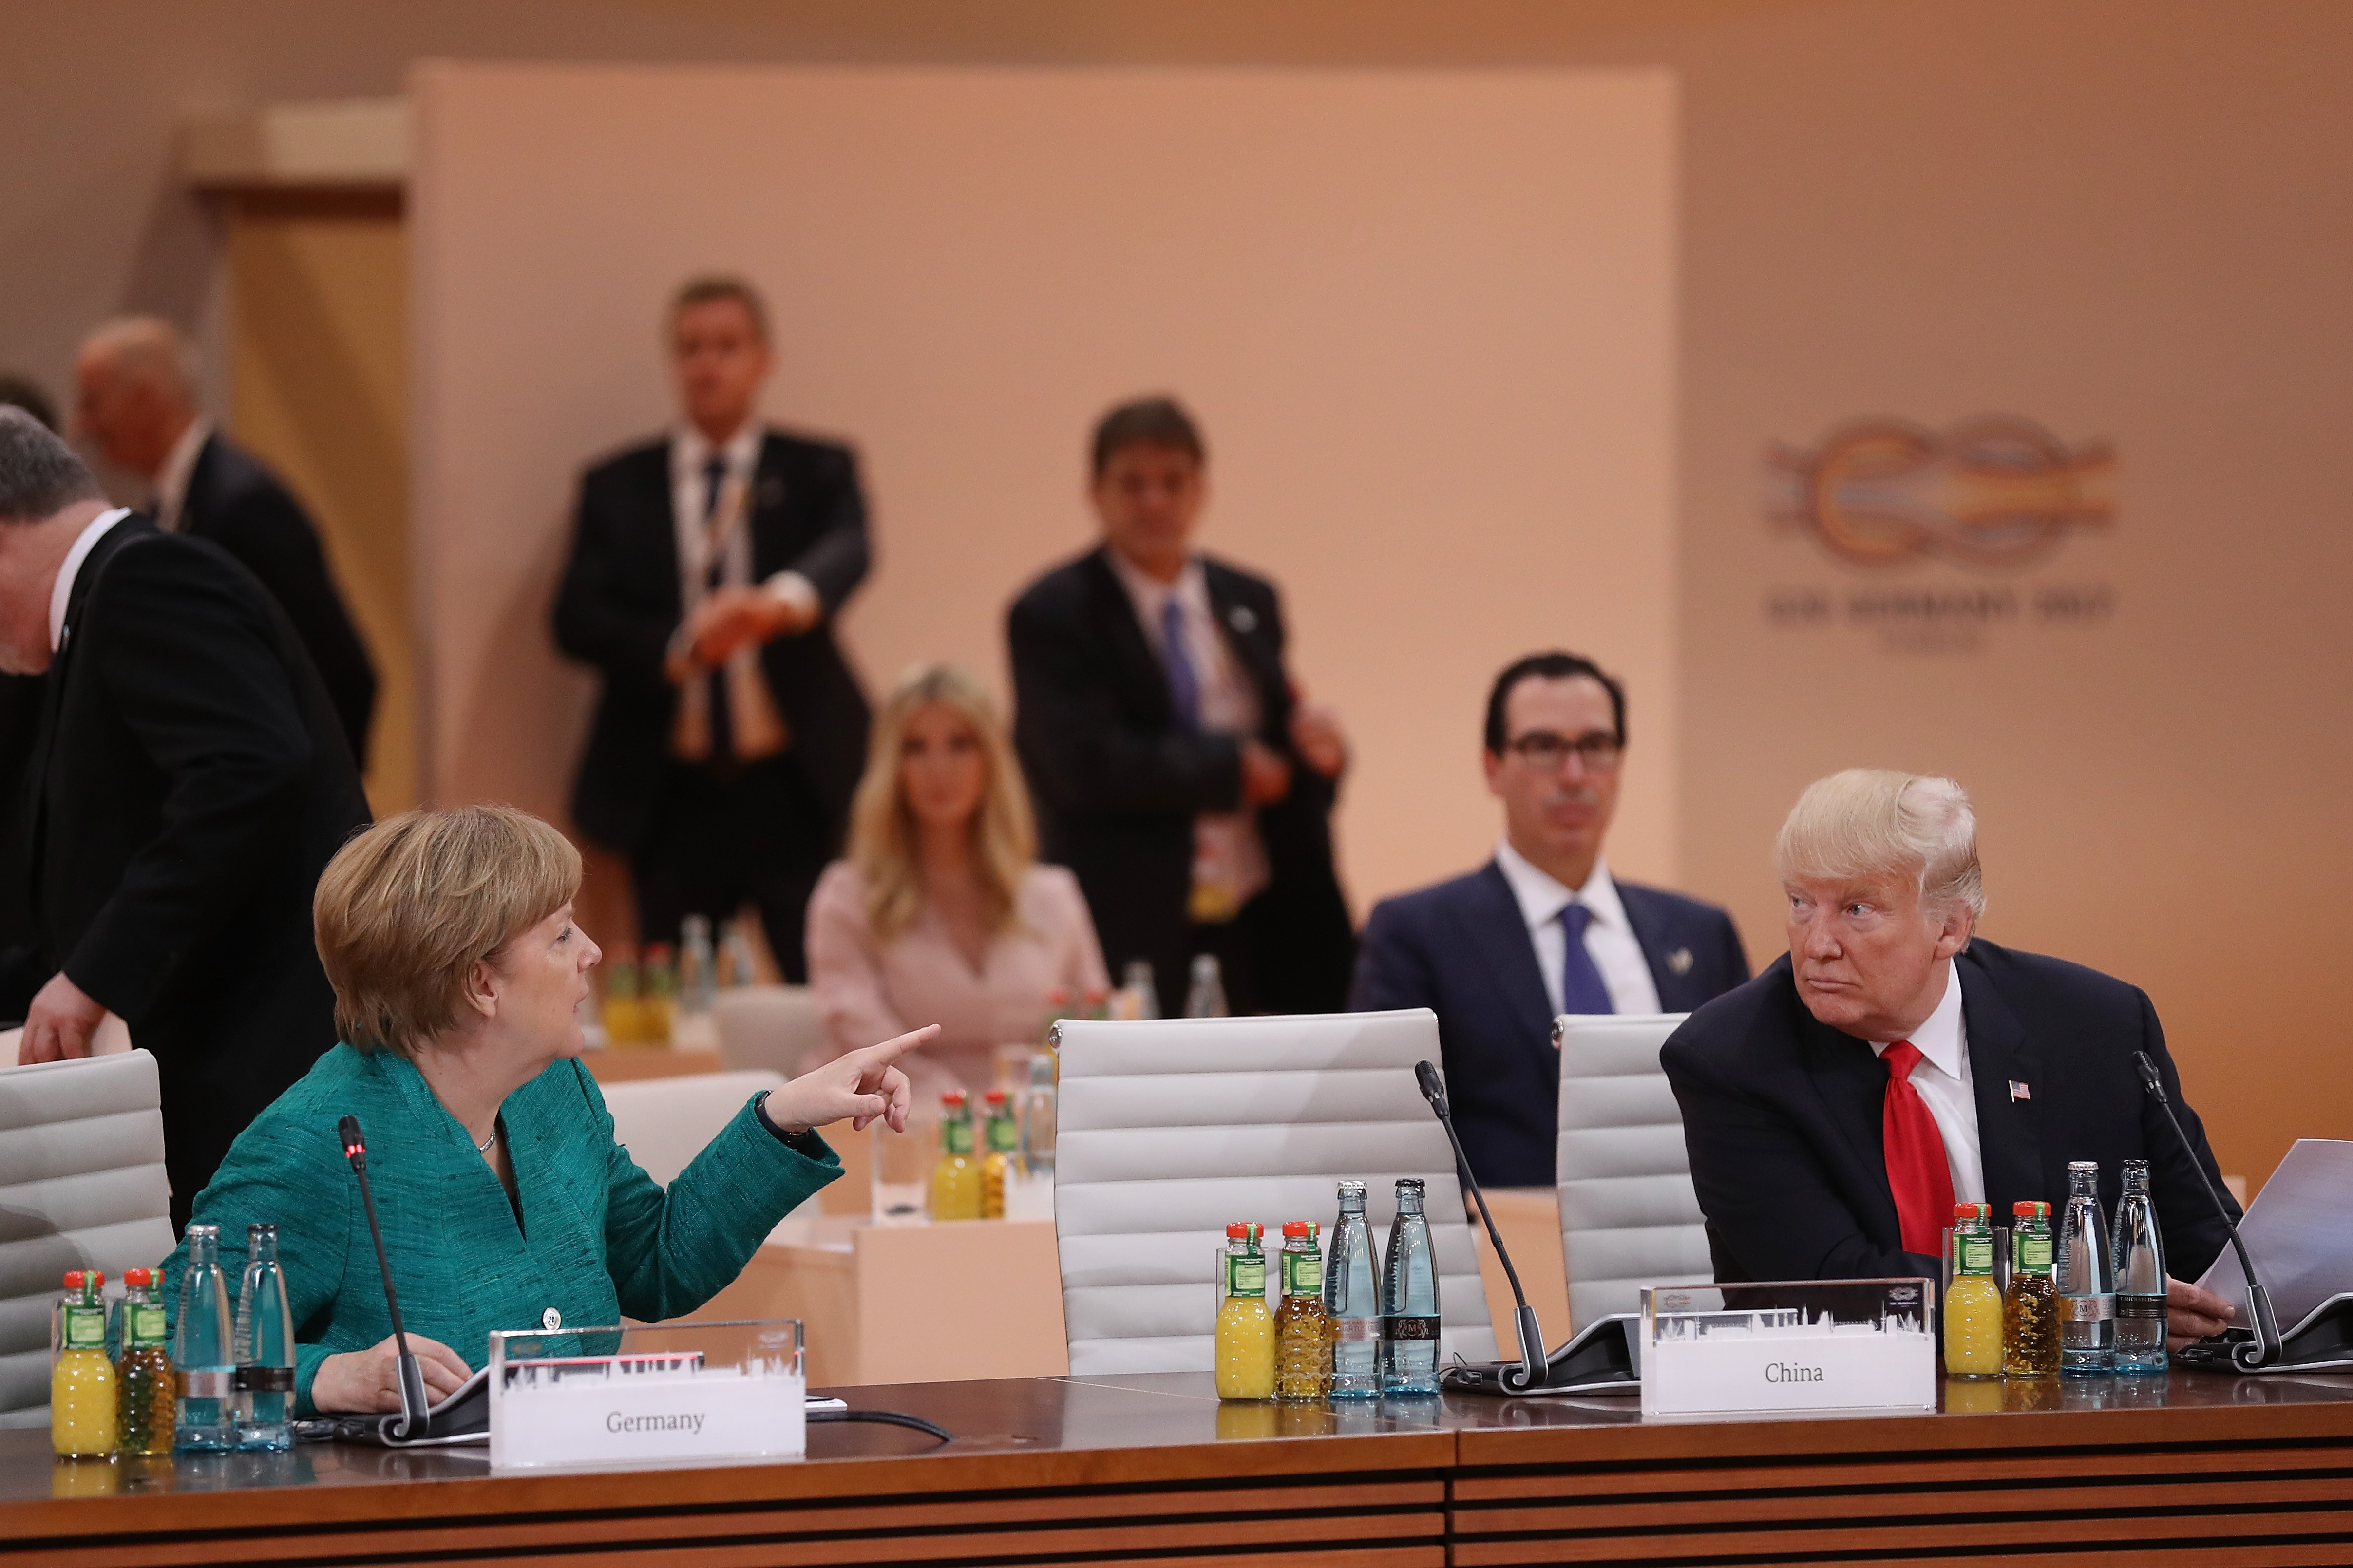 German Chancellor Angela Merkel and U.S. President Donald Trump attend the morning working session on the second day of the G20 economic summit on July 8 in Hamburg, Germany.